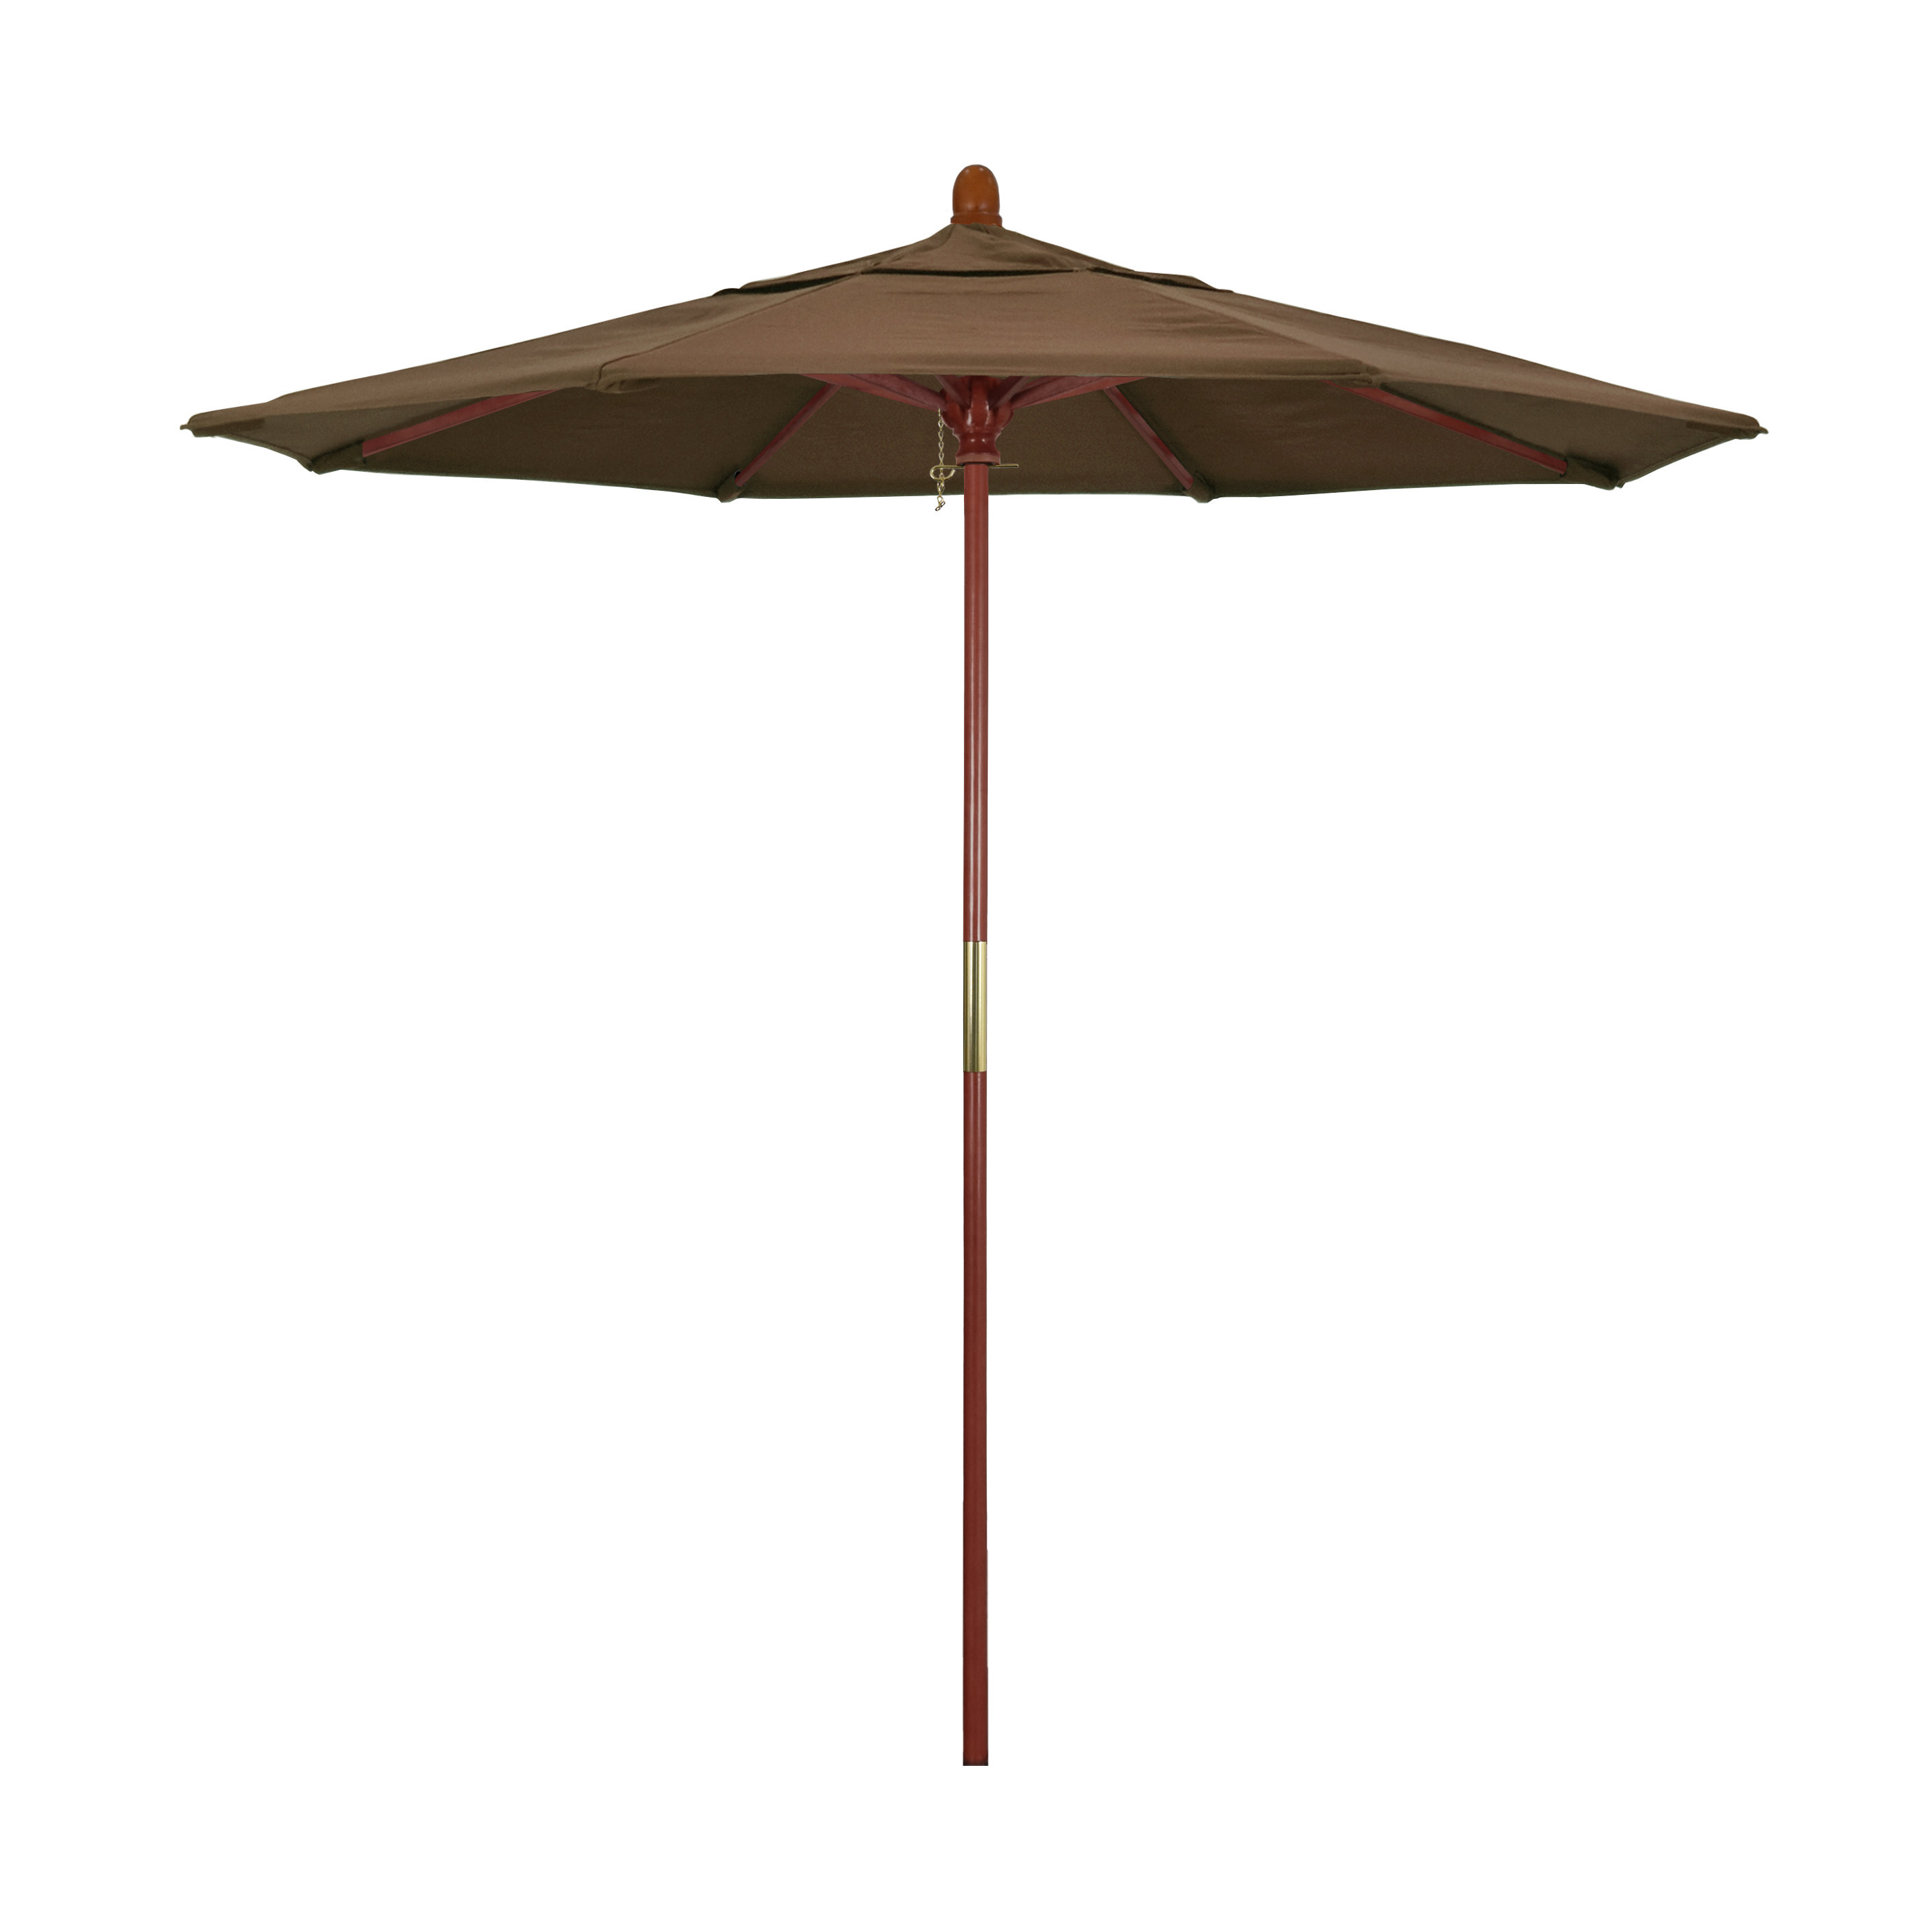 Mraz 7.5' Market Umbrella With Preferred Mraz Market Umbrellas (Gallery 1 of 20)